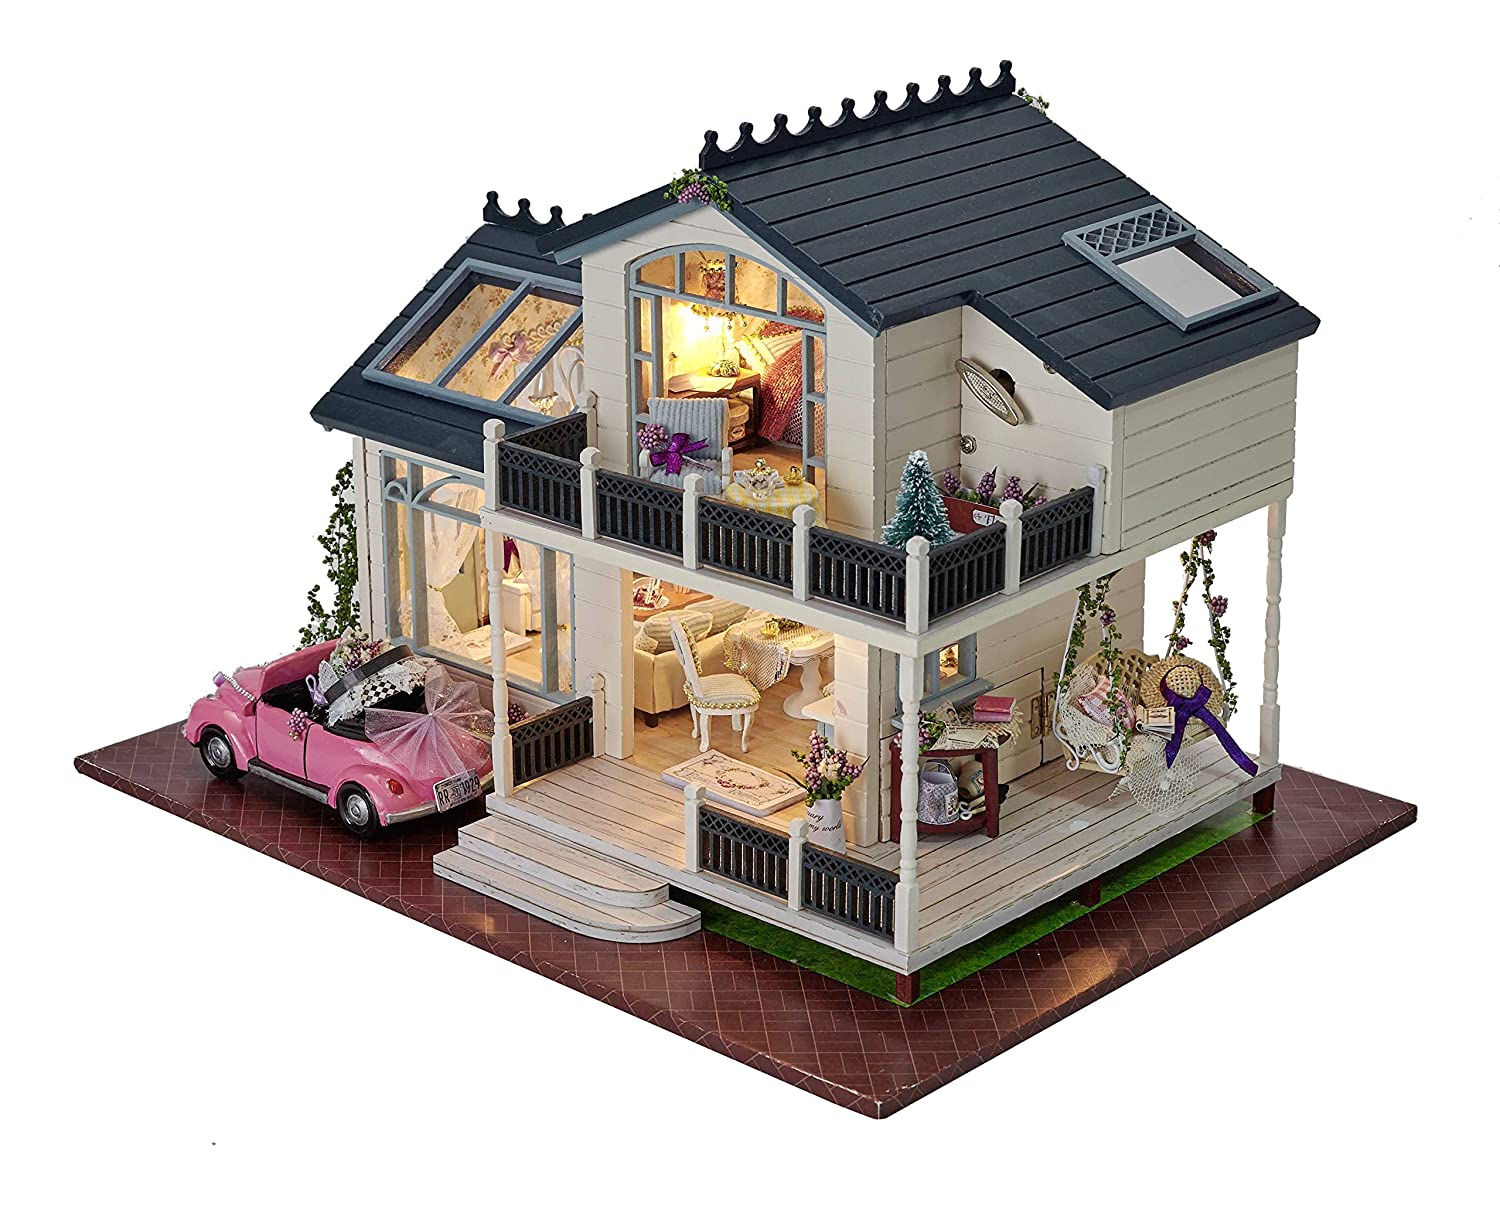 Amazon.com: DIY Wooden Dollhouse Miniature Kit Wood House Toy U0026 LED Light  With All Furnitures Car By Youku: Toys U0026 Games